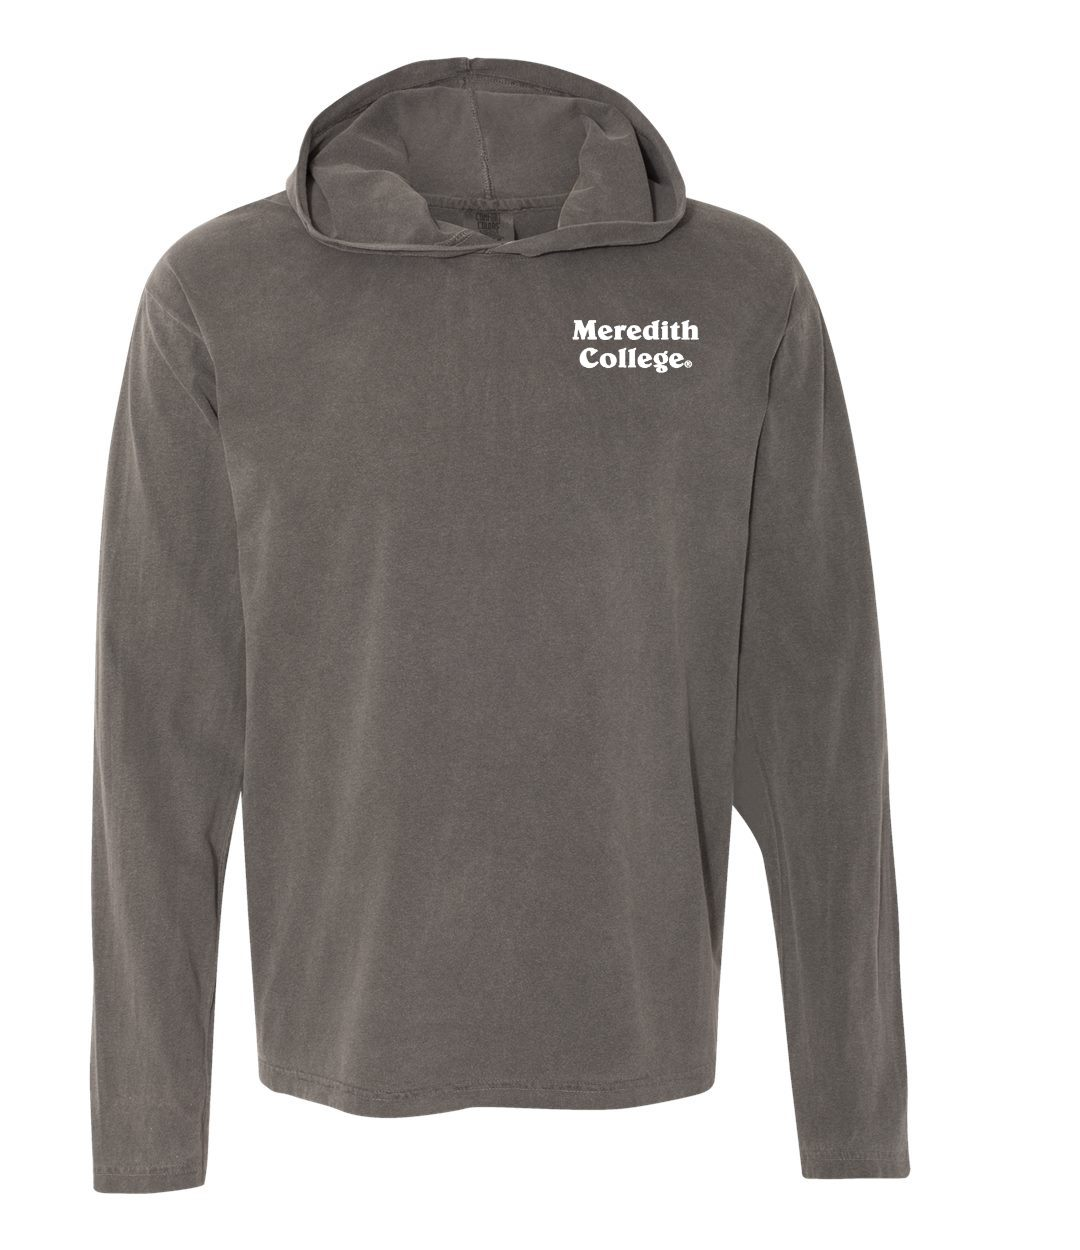 Alternative Image for the Comfort Colors Long Sleeve Hooded Tee Pepper Summit Sportswear product